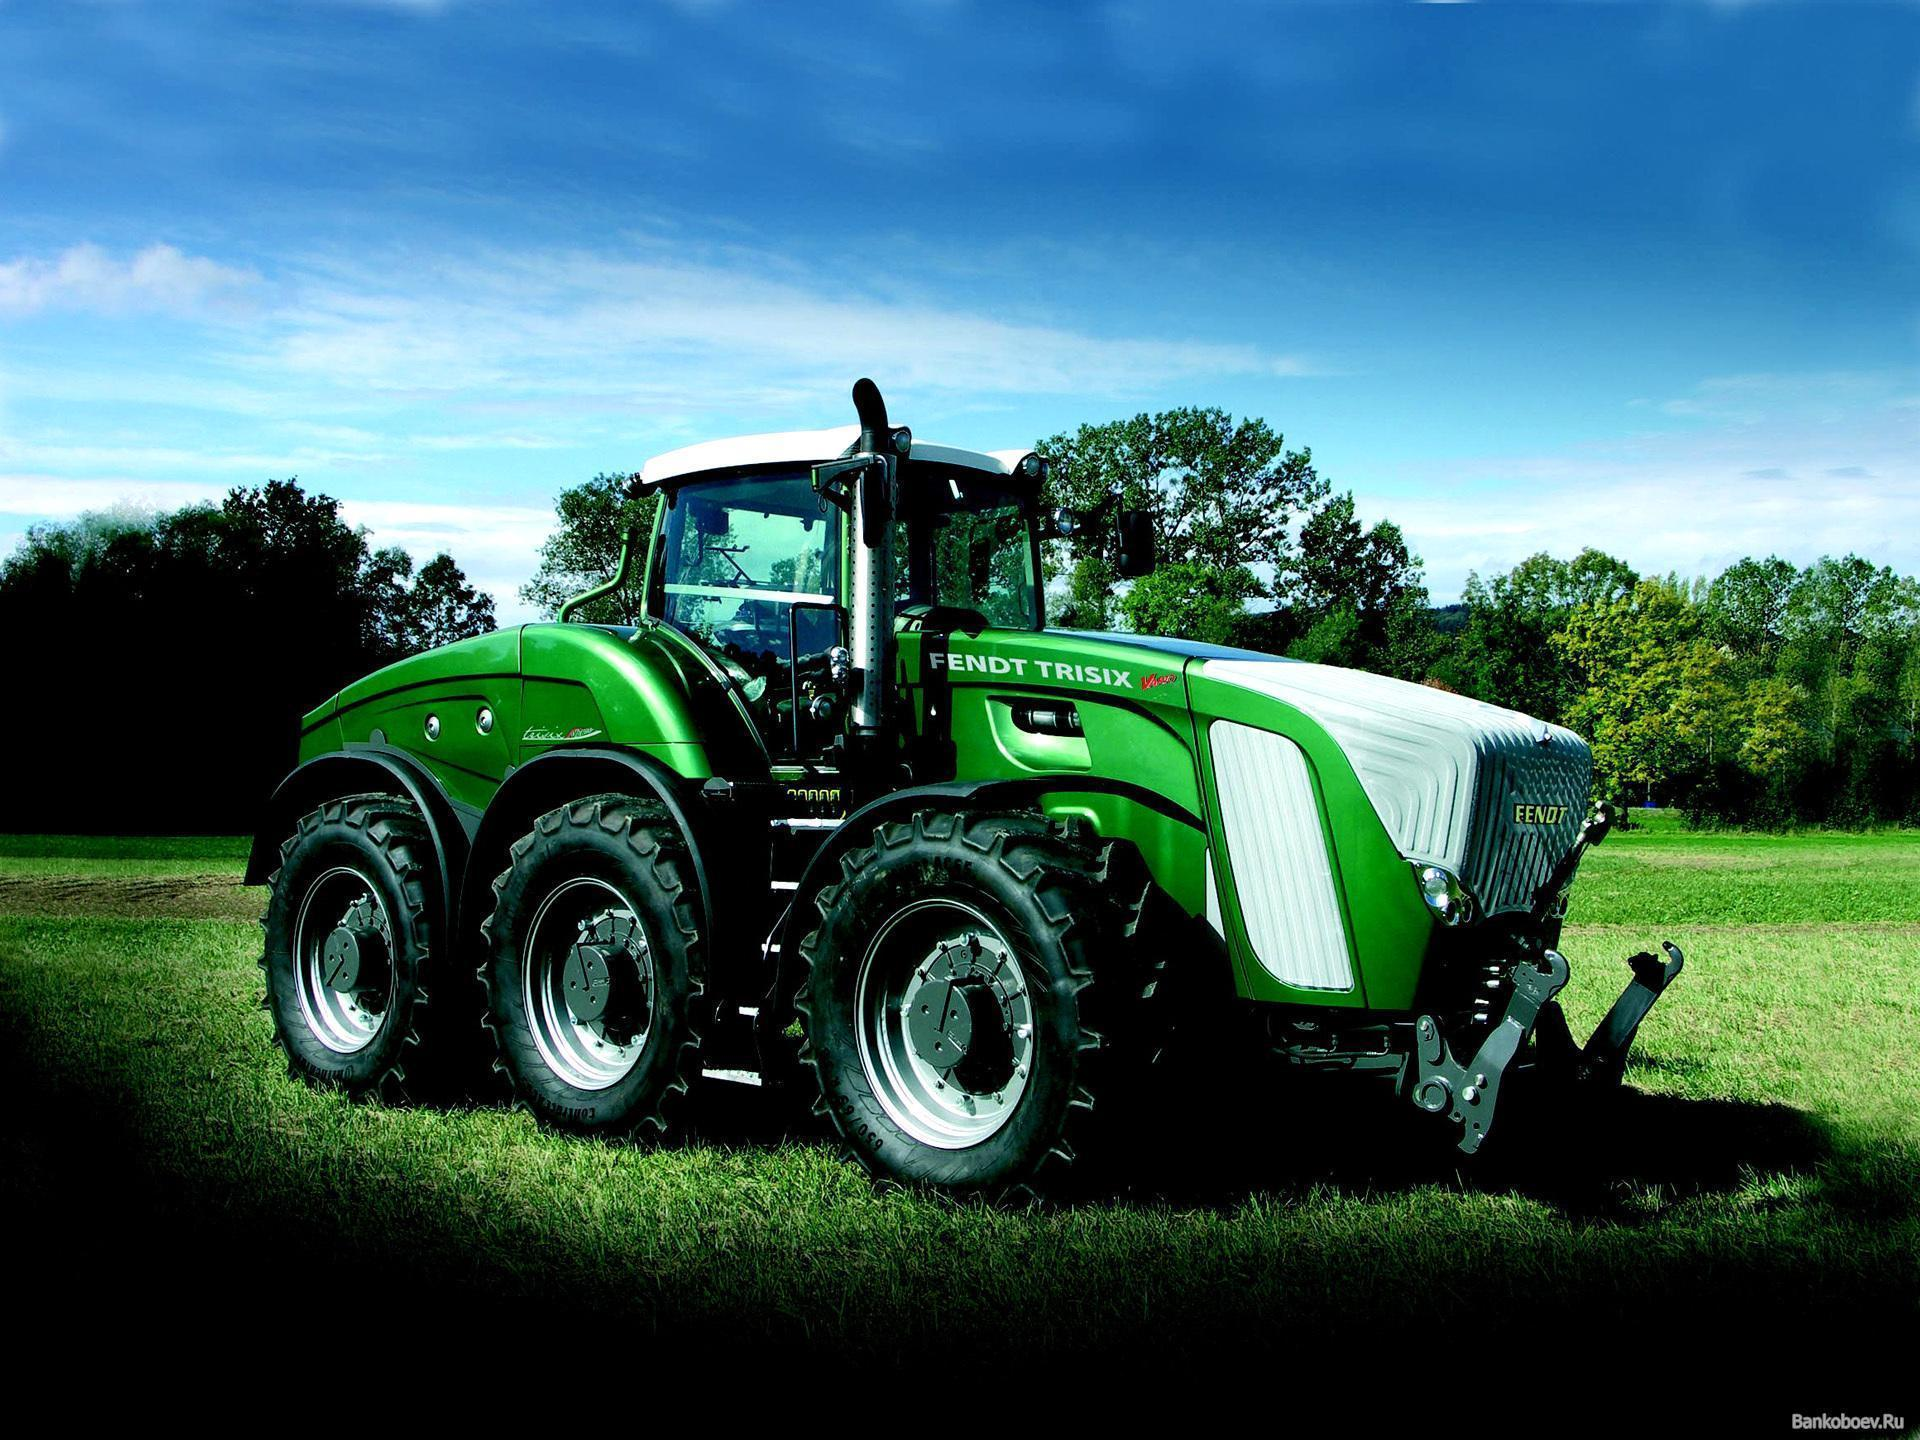 Tractor Wallpapers HD Download | HD Wallpapers | Pinterest ...